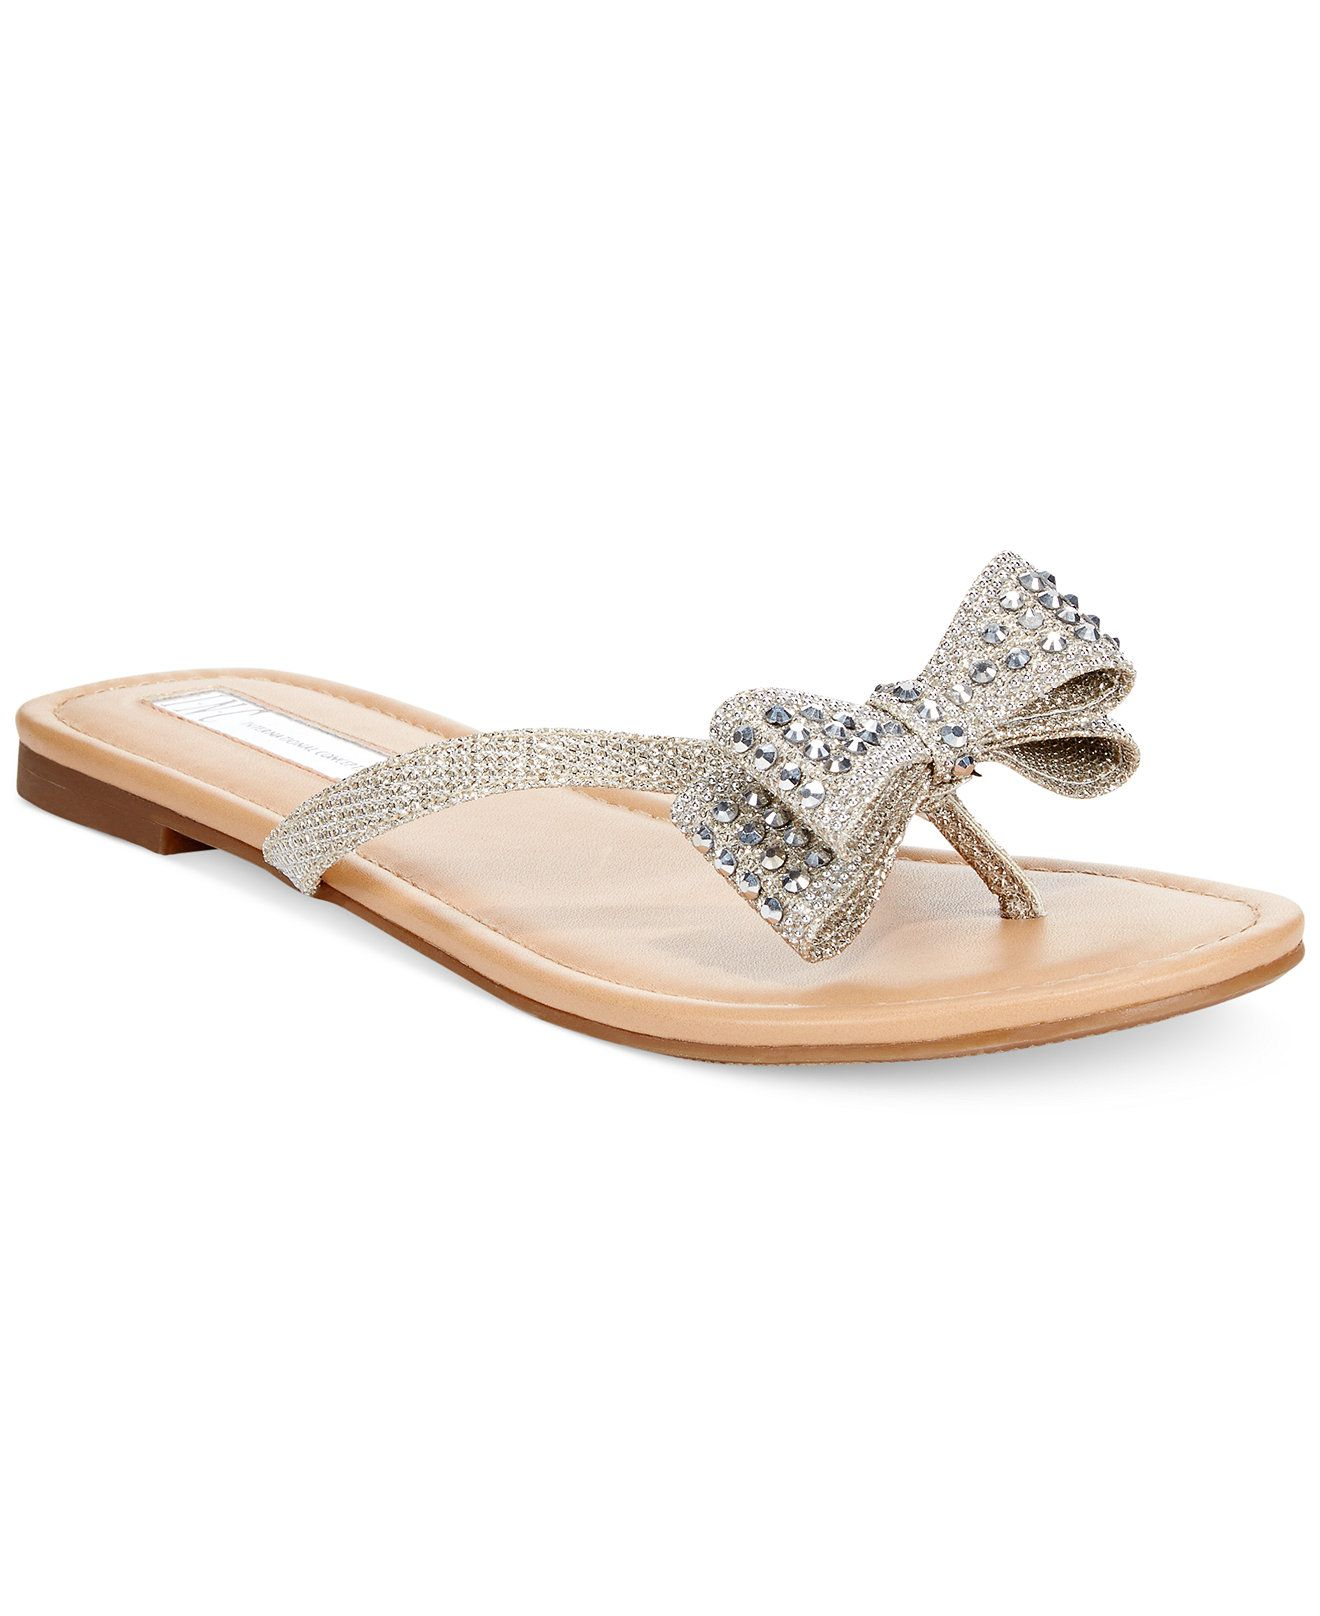 485a94d54 INC International Concepts Malissa Rhinestone Bow Flat Sandals - Evening    Bridal - Shoes - Macy s